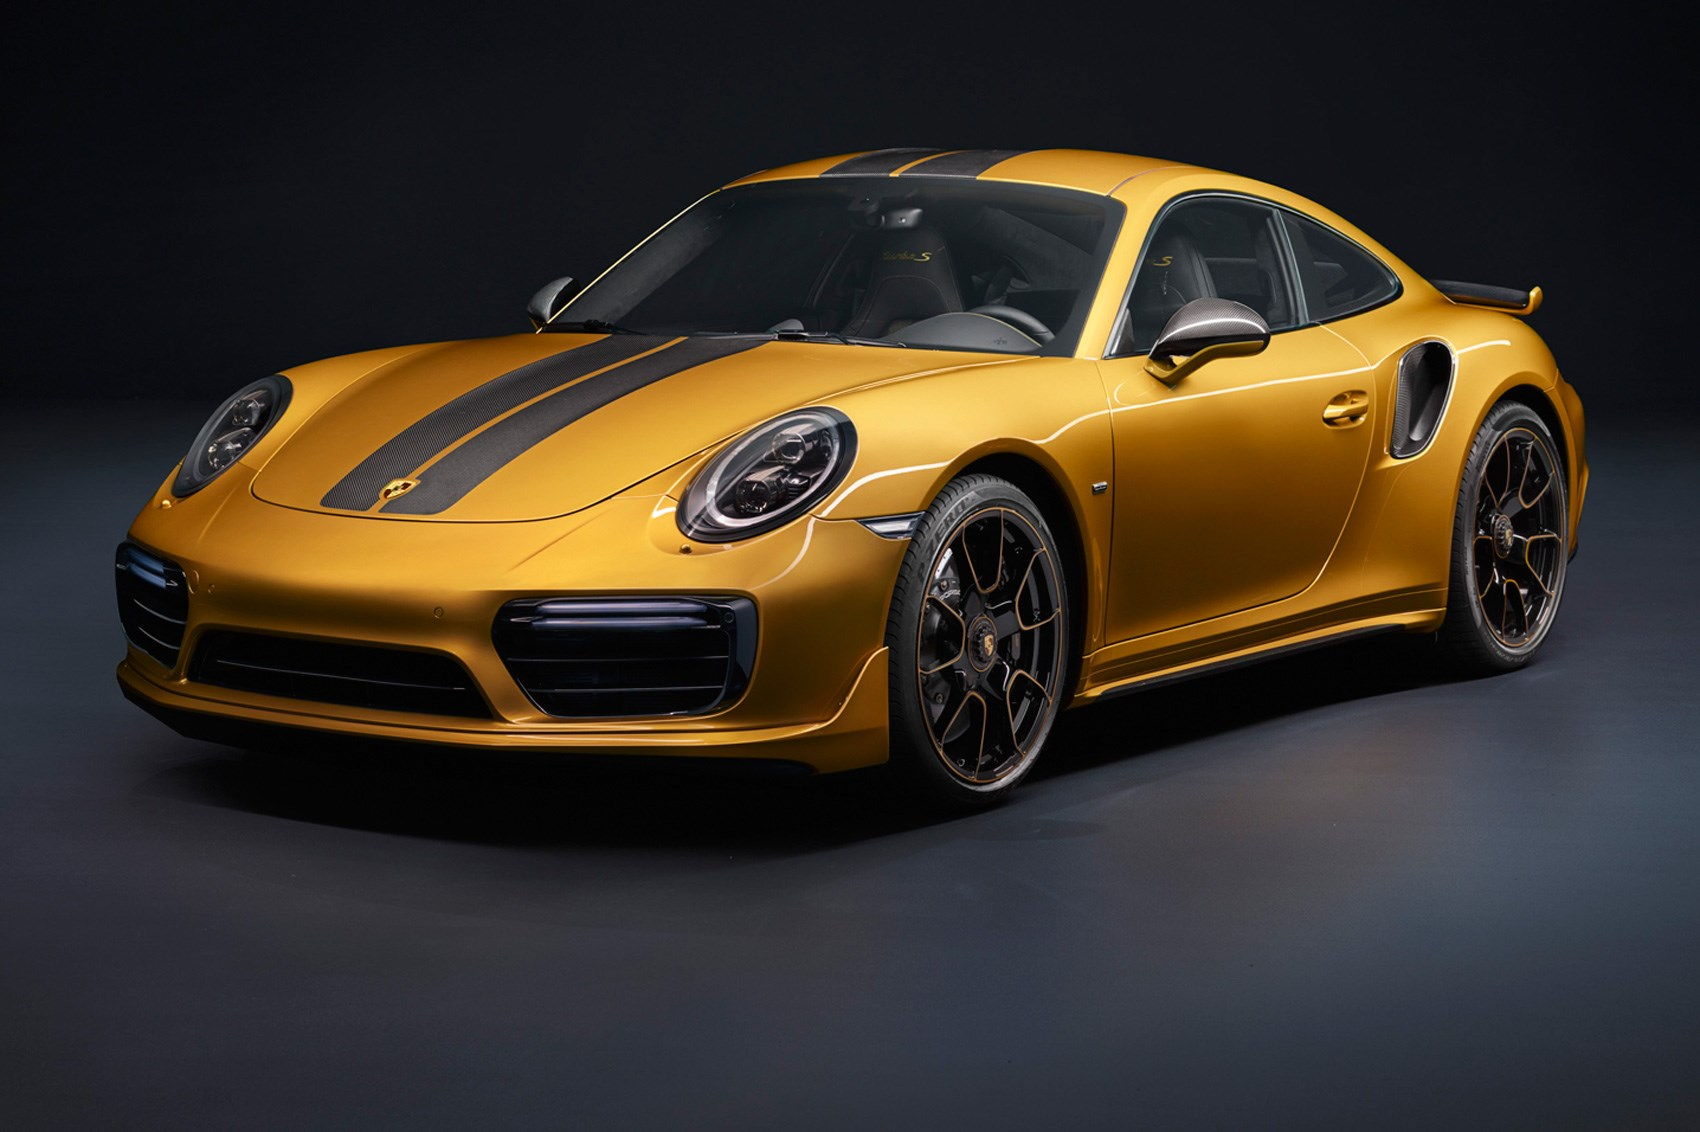 Porsche 911 Turbo S Exclusive Series: the most powerful 911 Turbo of ...